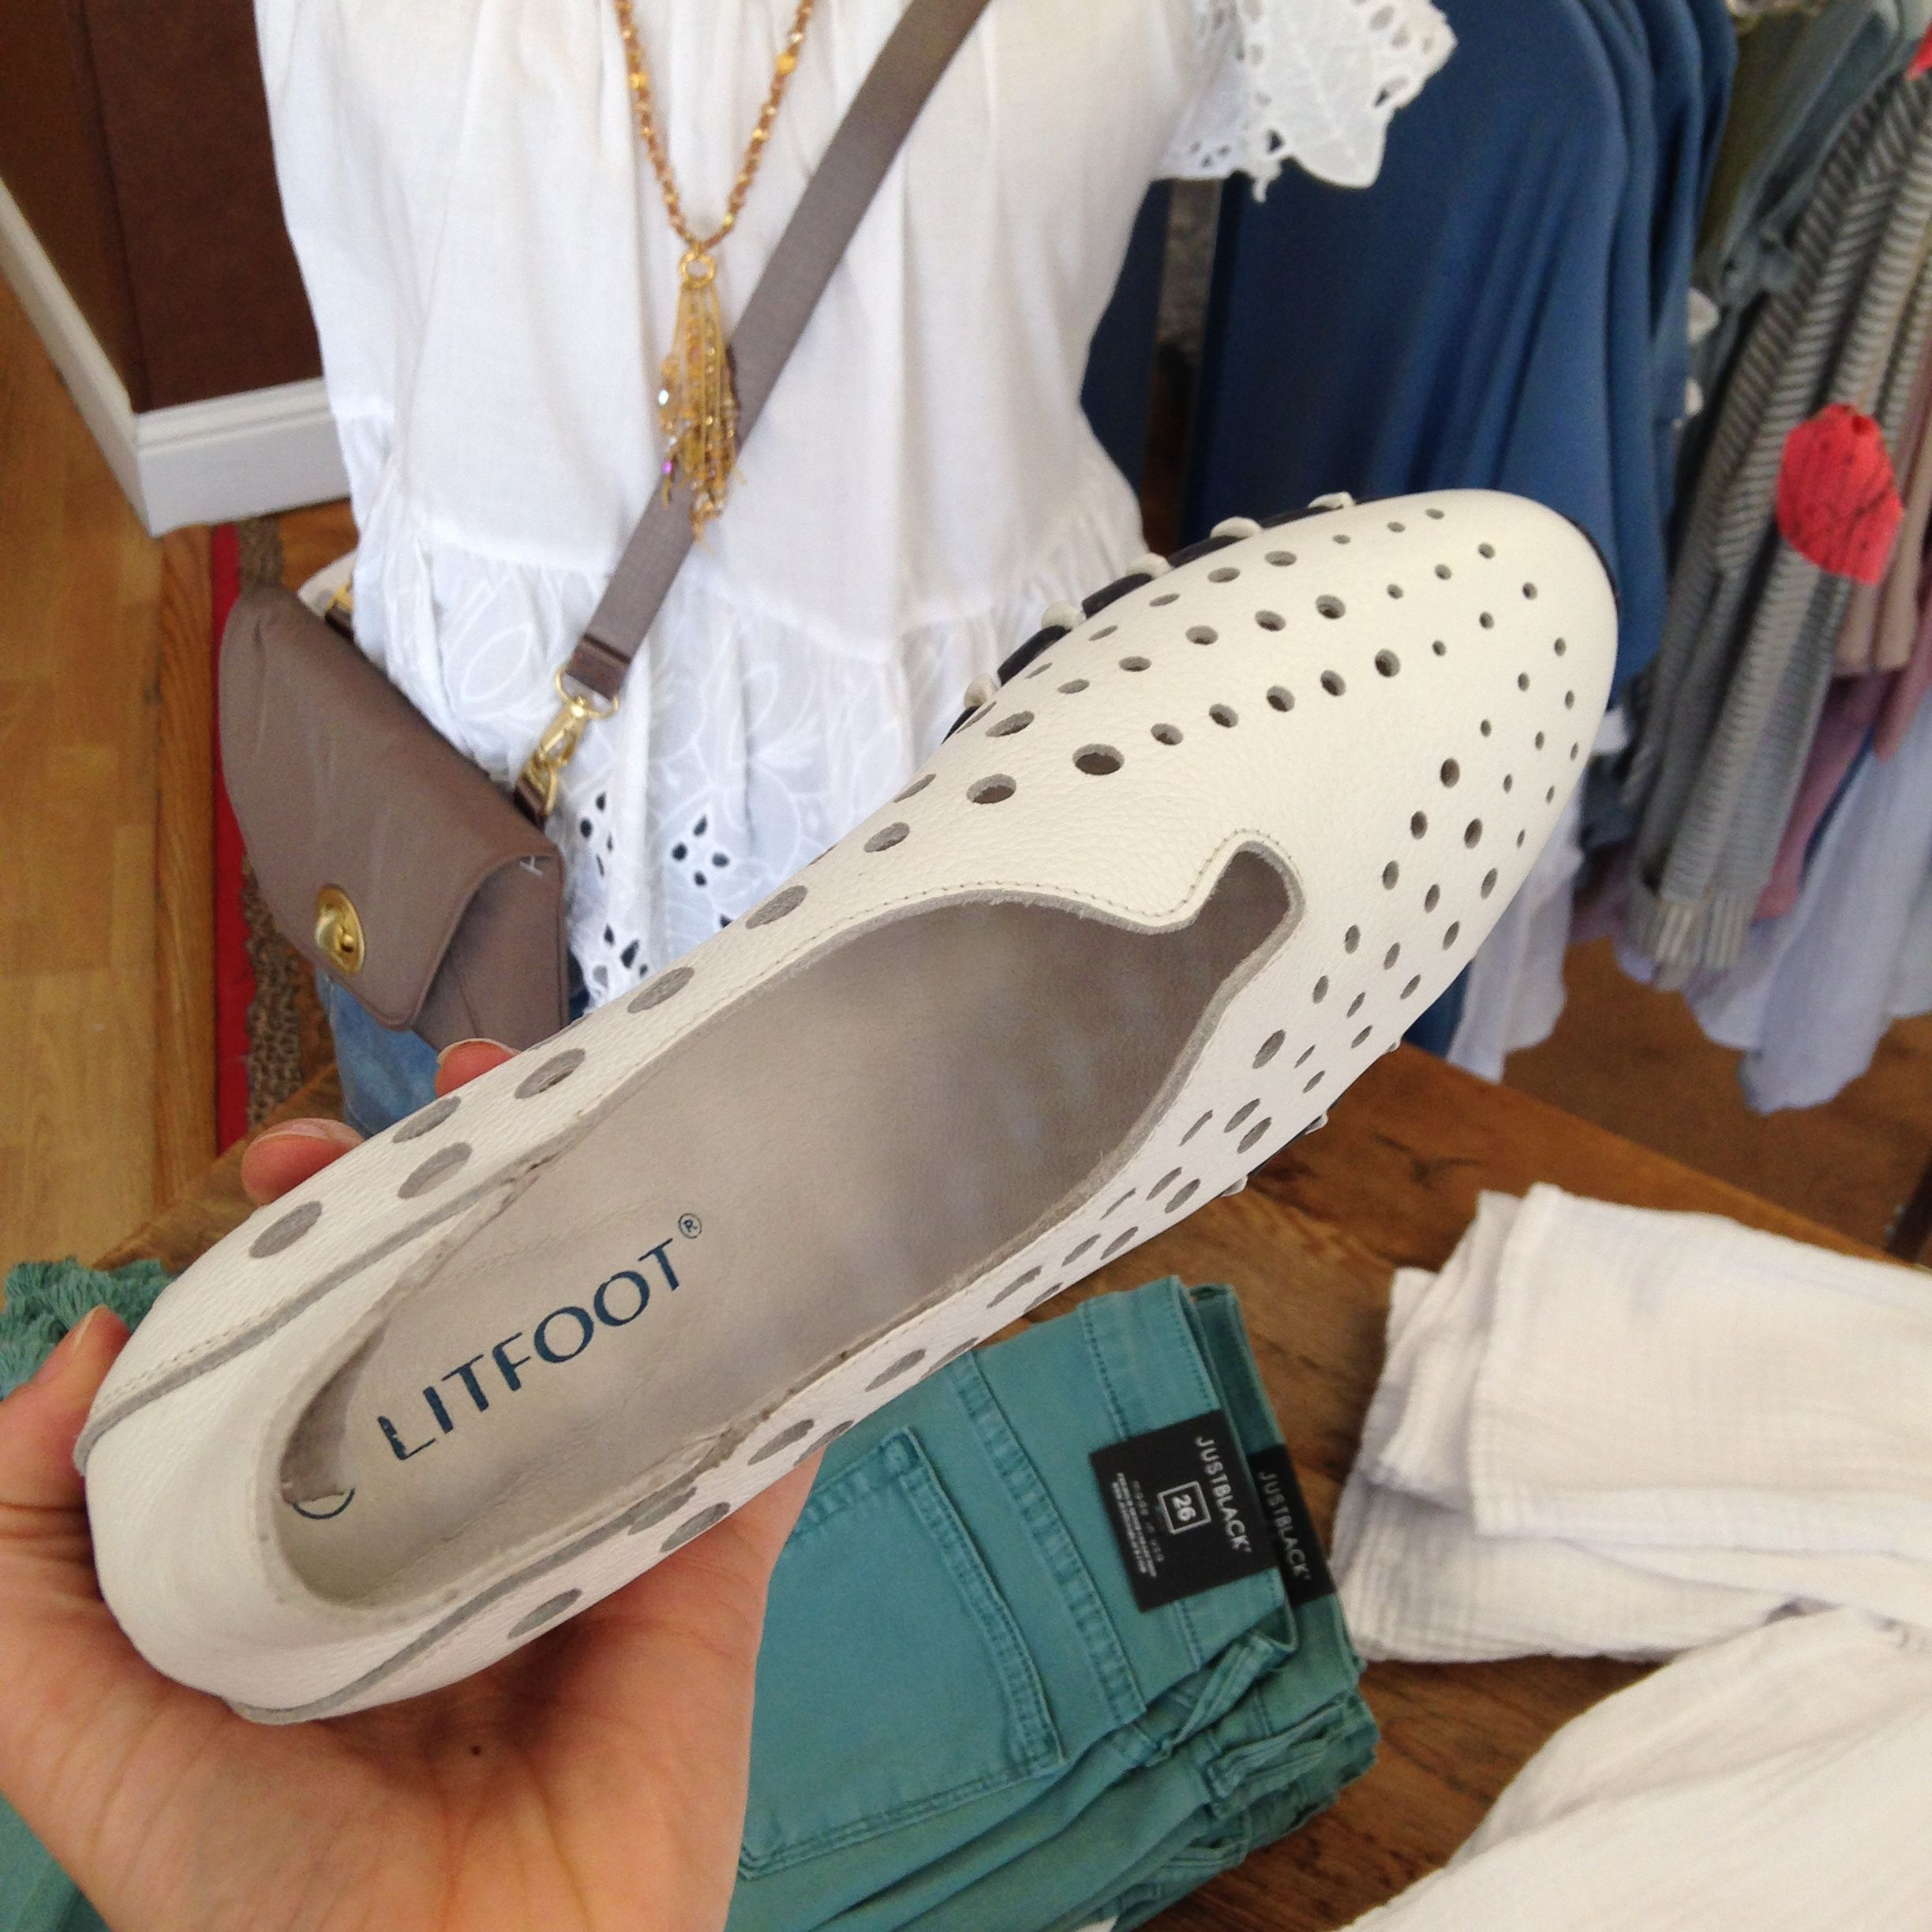 Best Travel shoes EVER! FREE SHIPPING!!! Litfoot perforated sneakers. Shop  online